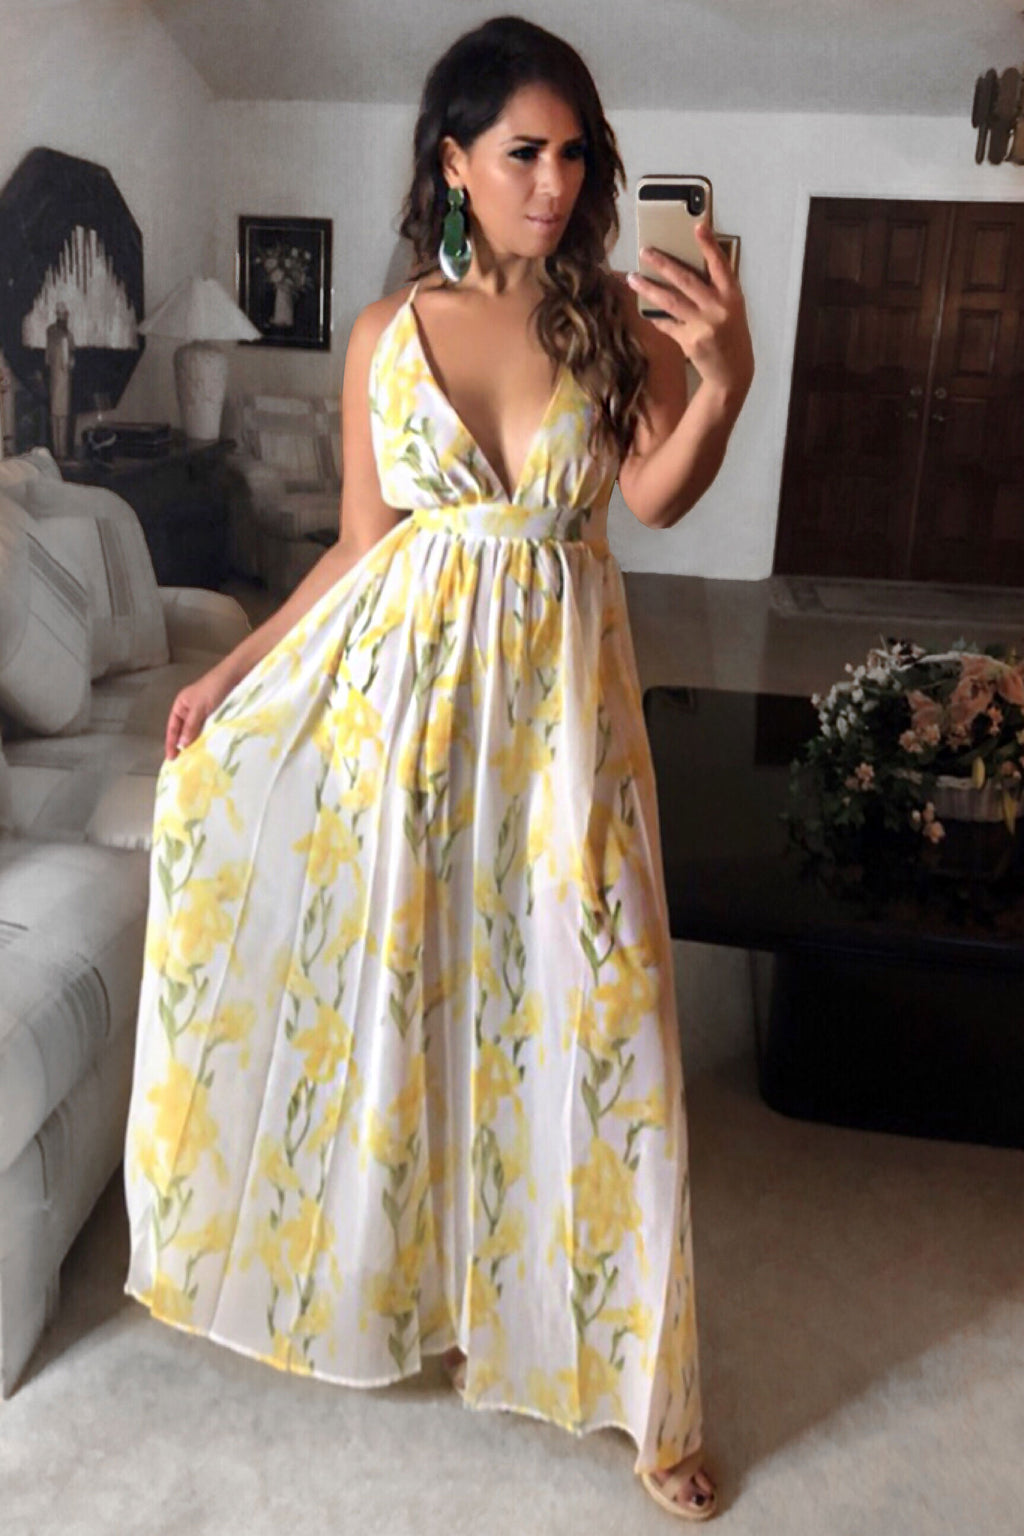 Angelina Sexy Sheer Spaghetti Criss Cross Straps Beach Party Maxi Dress - Yellow - MY SEXY STYLES